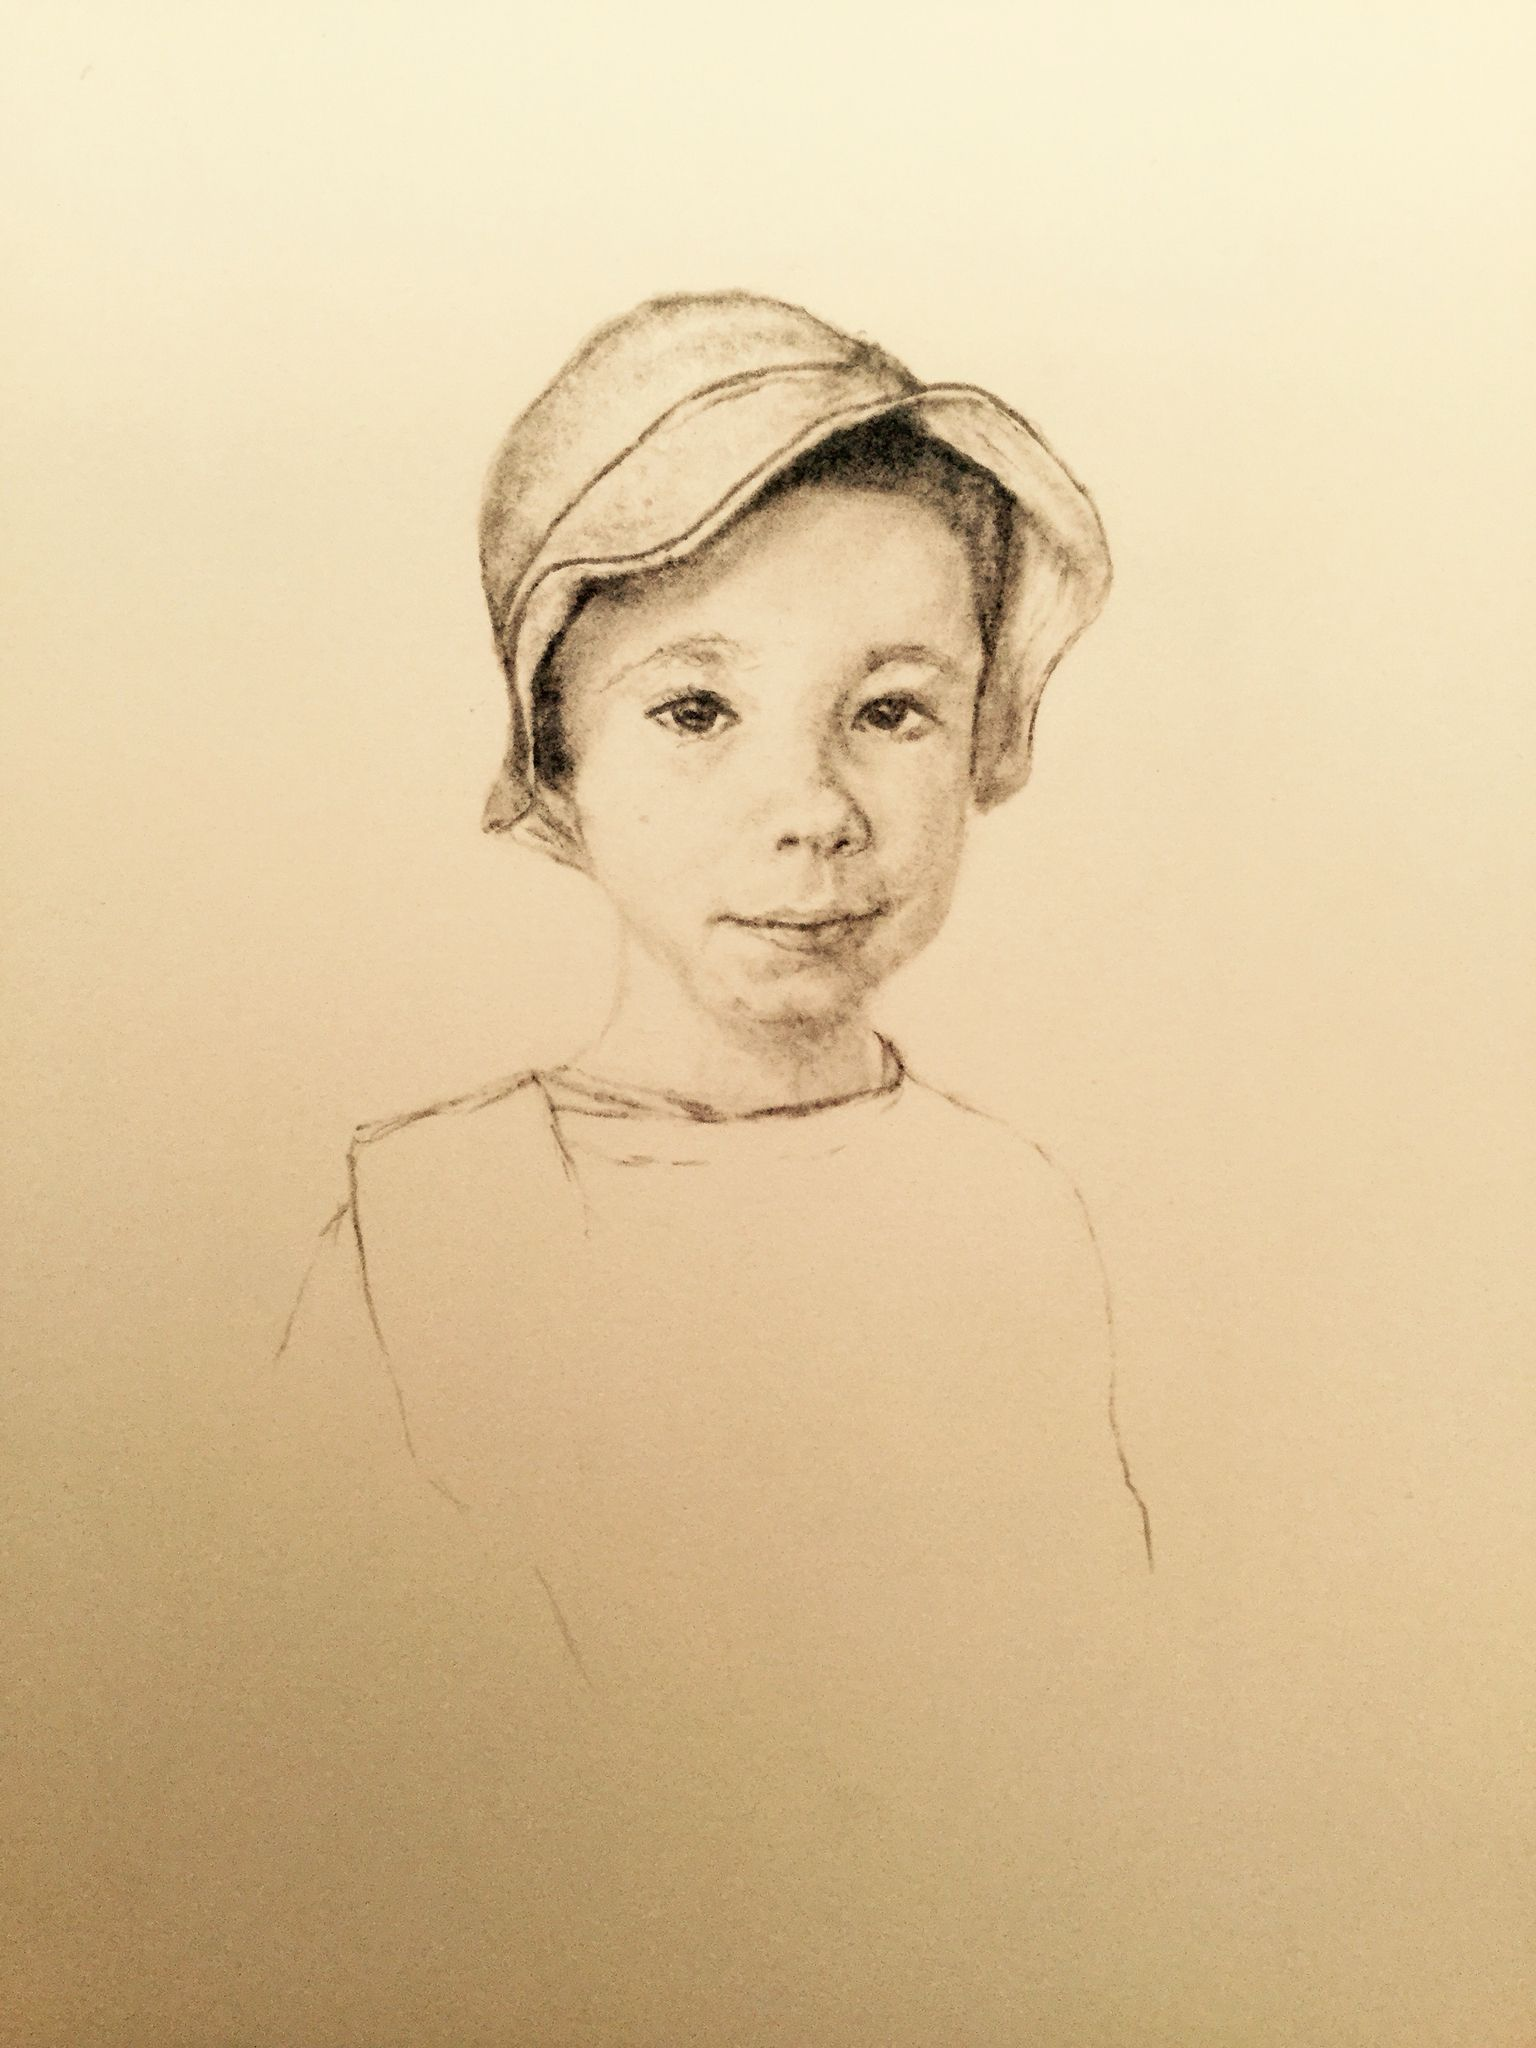 Portrait of a young boy by W.K.PERRIAM